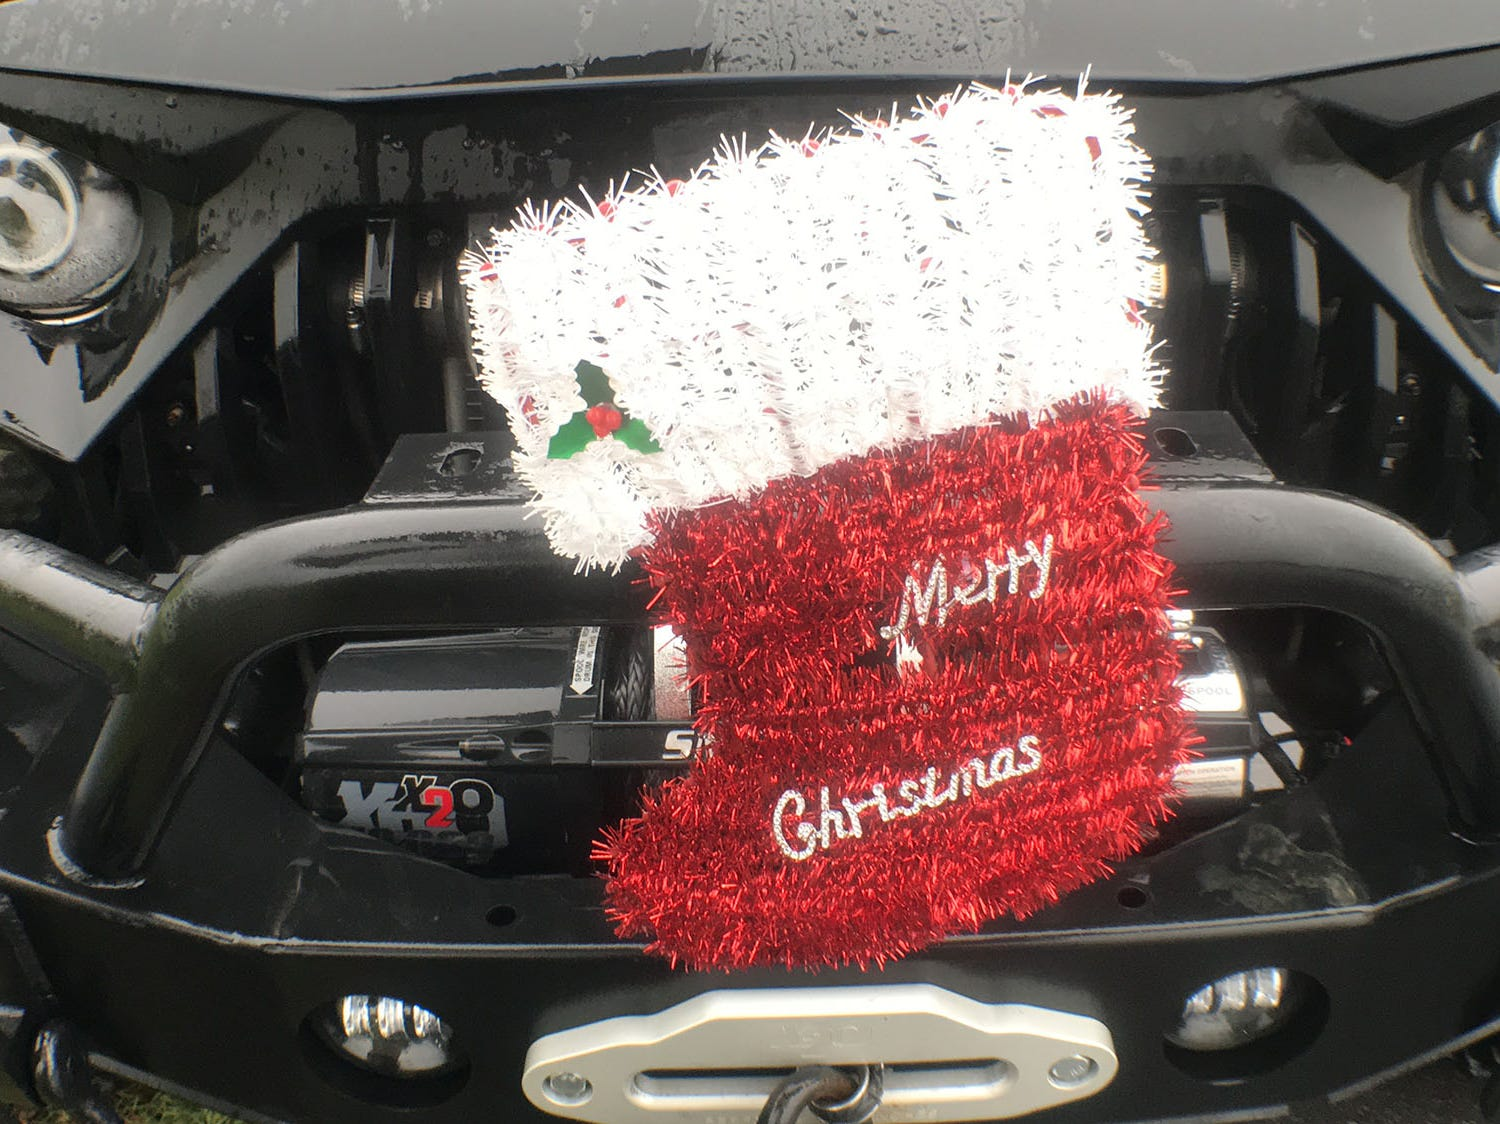 A Jeep Wrangler is decorated for  Christmas. Franklin County Jeeps Club were on their Shelter Tour on Saturday, December 1, 2018 and donated pet food and other items to local animal shelters, including Cumberland Valley Animal Shelter, Antietam Humane Society and Humane Society of Washington County. The group plans to make the donations and annual event.